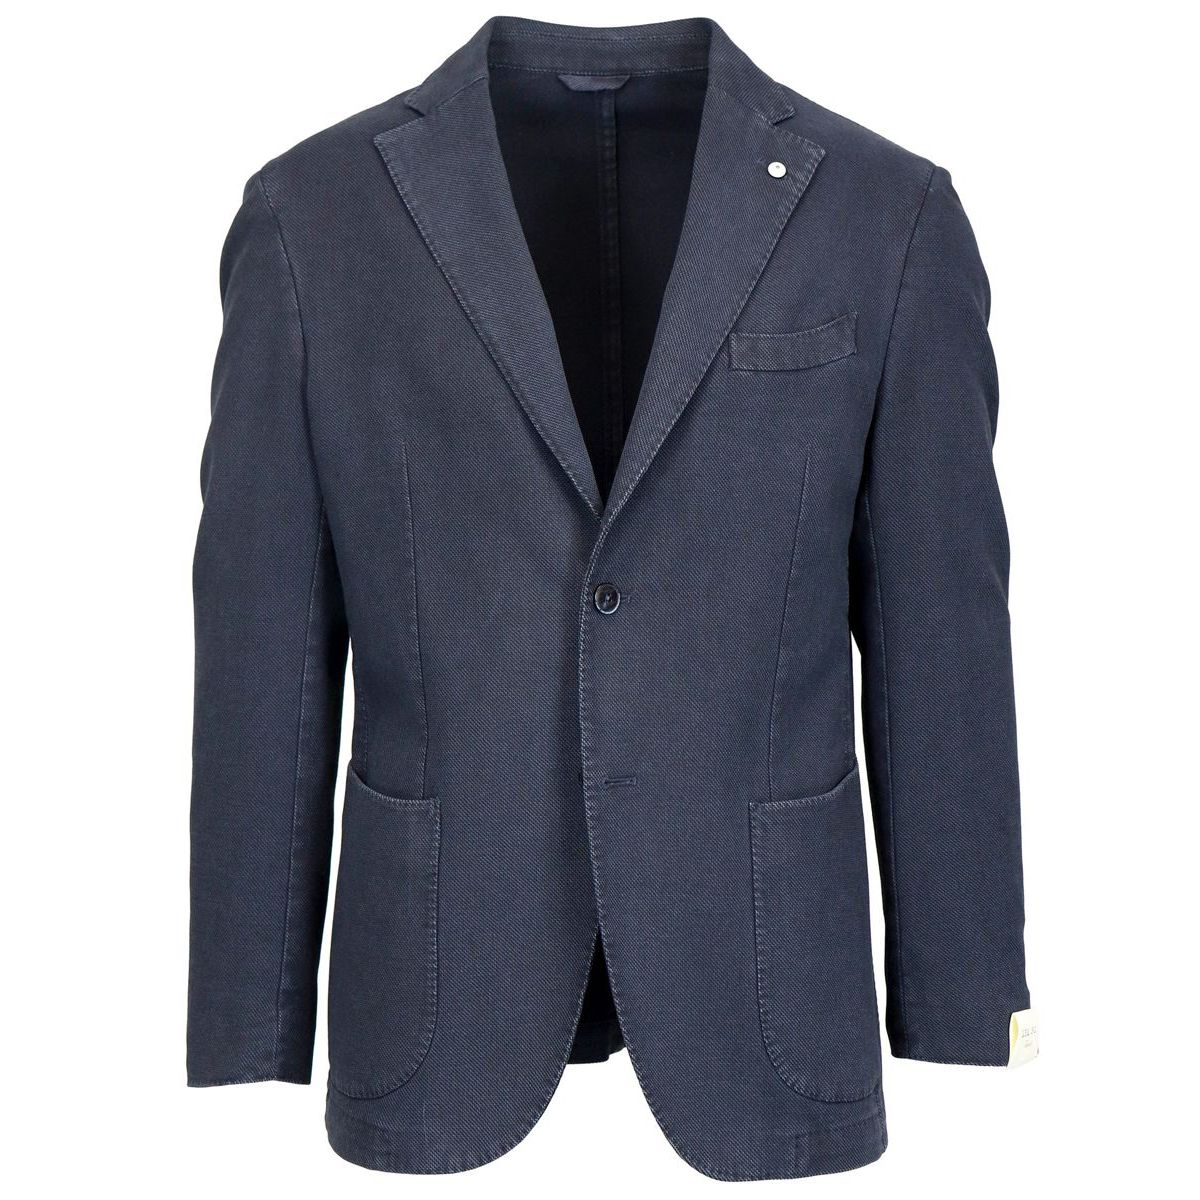 Two-button jacket in textured cotton Denim L.B.M. 1911